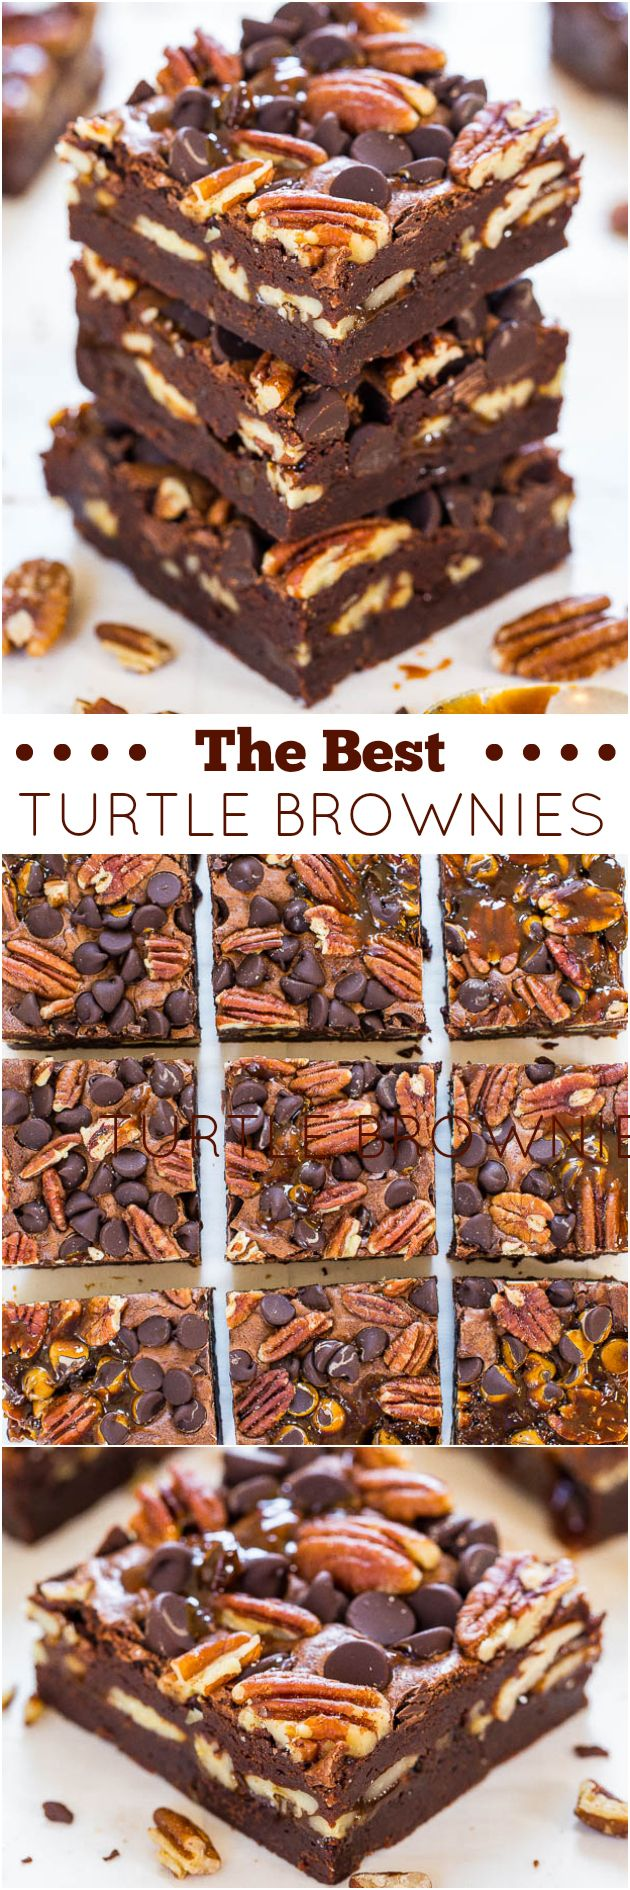 The Best Turtle Brownies - Averie Cooks